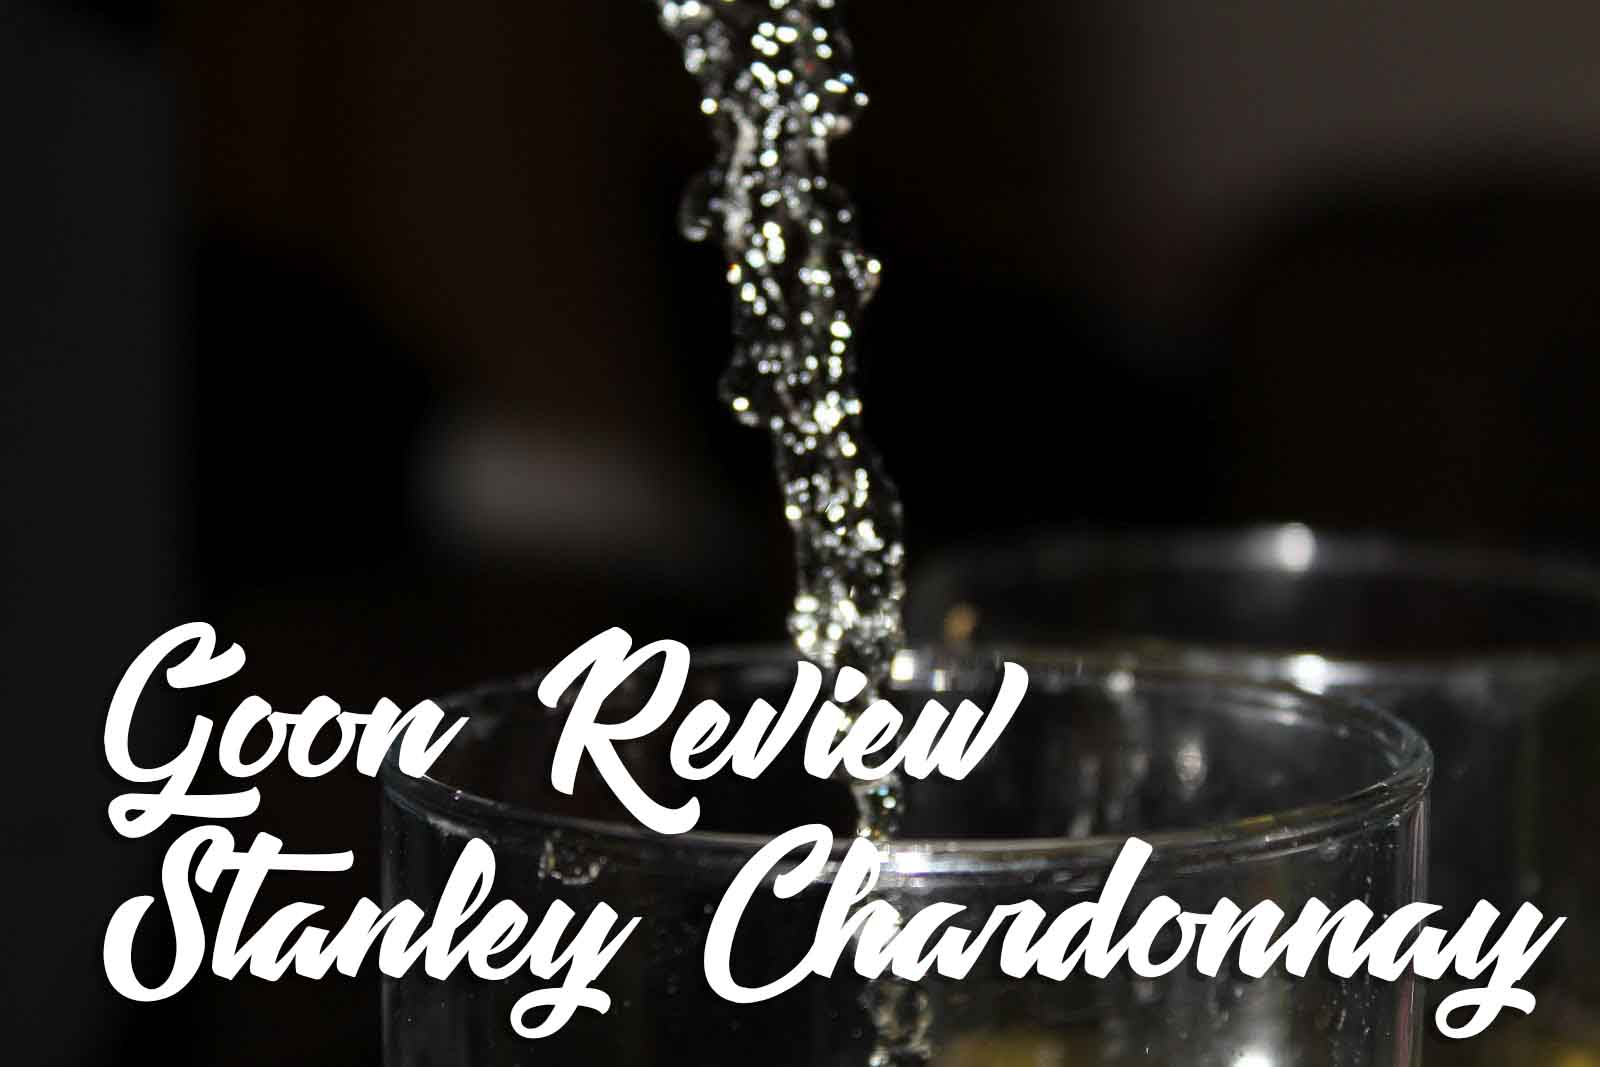 Stanley_Chardonnay_Goon_(Box_Wine)_Review